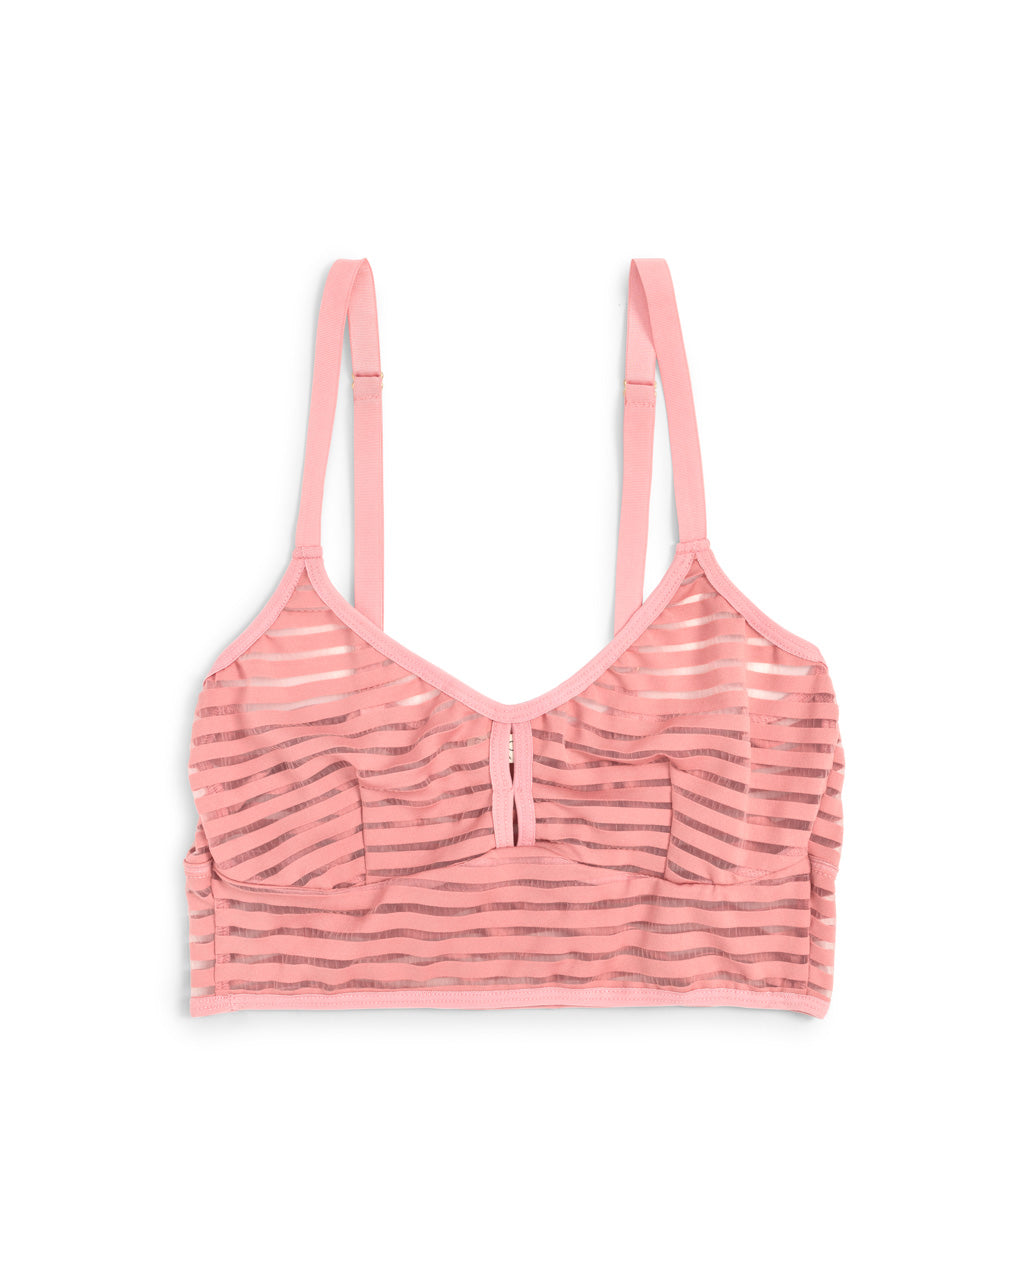 Pink semi-sheer bralette.